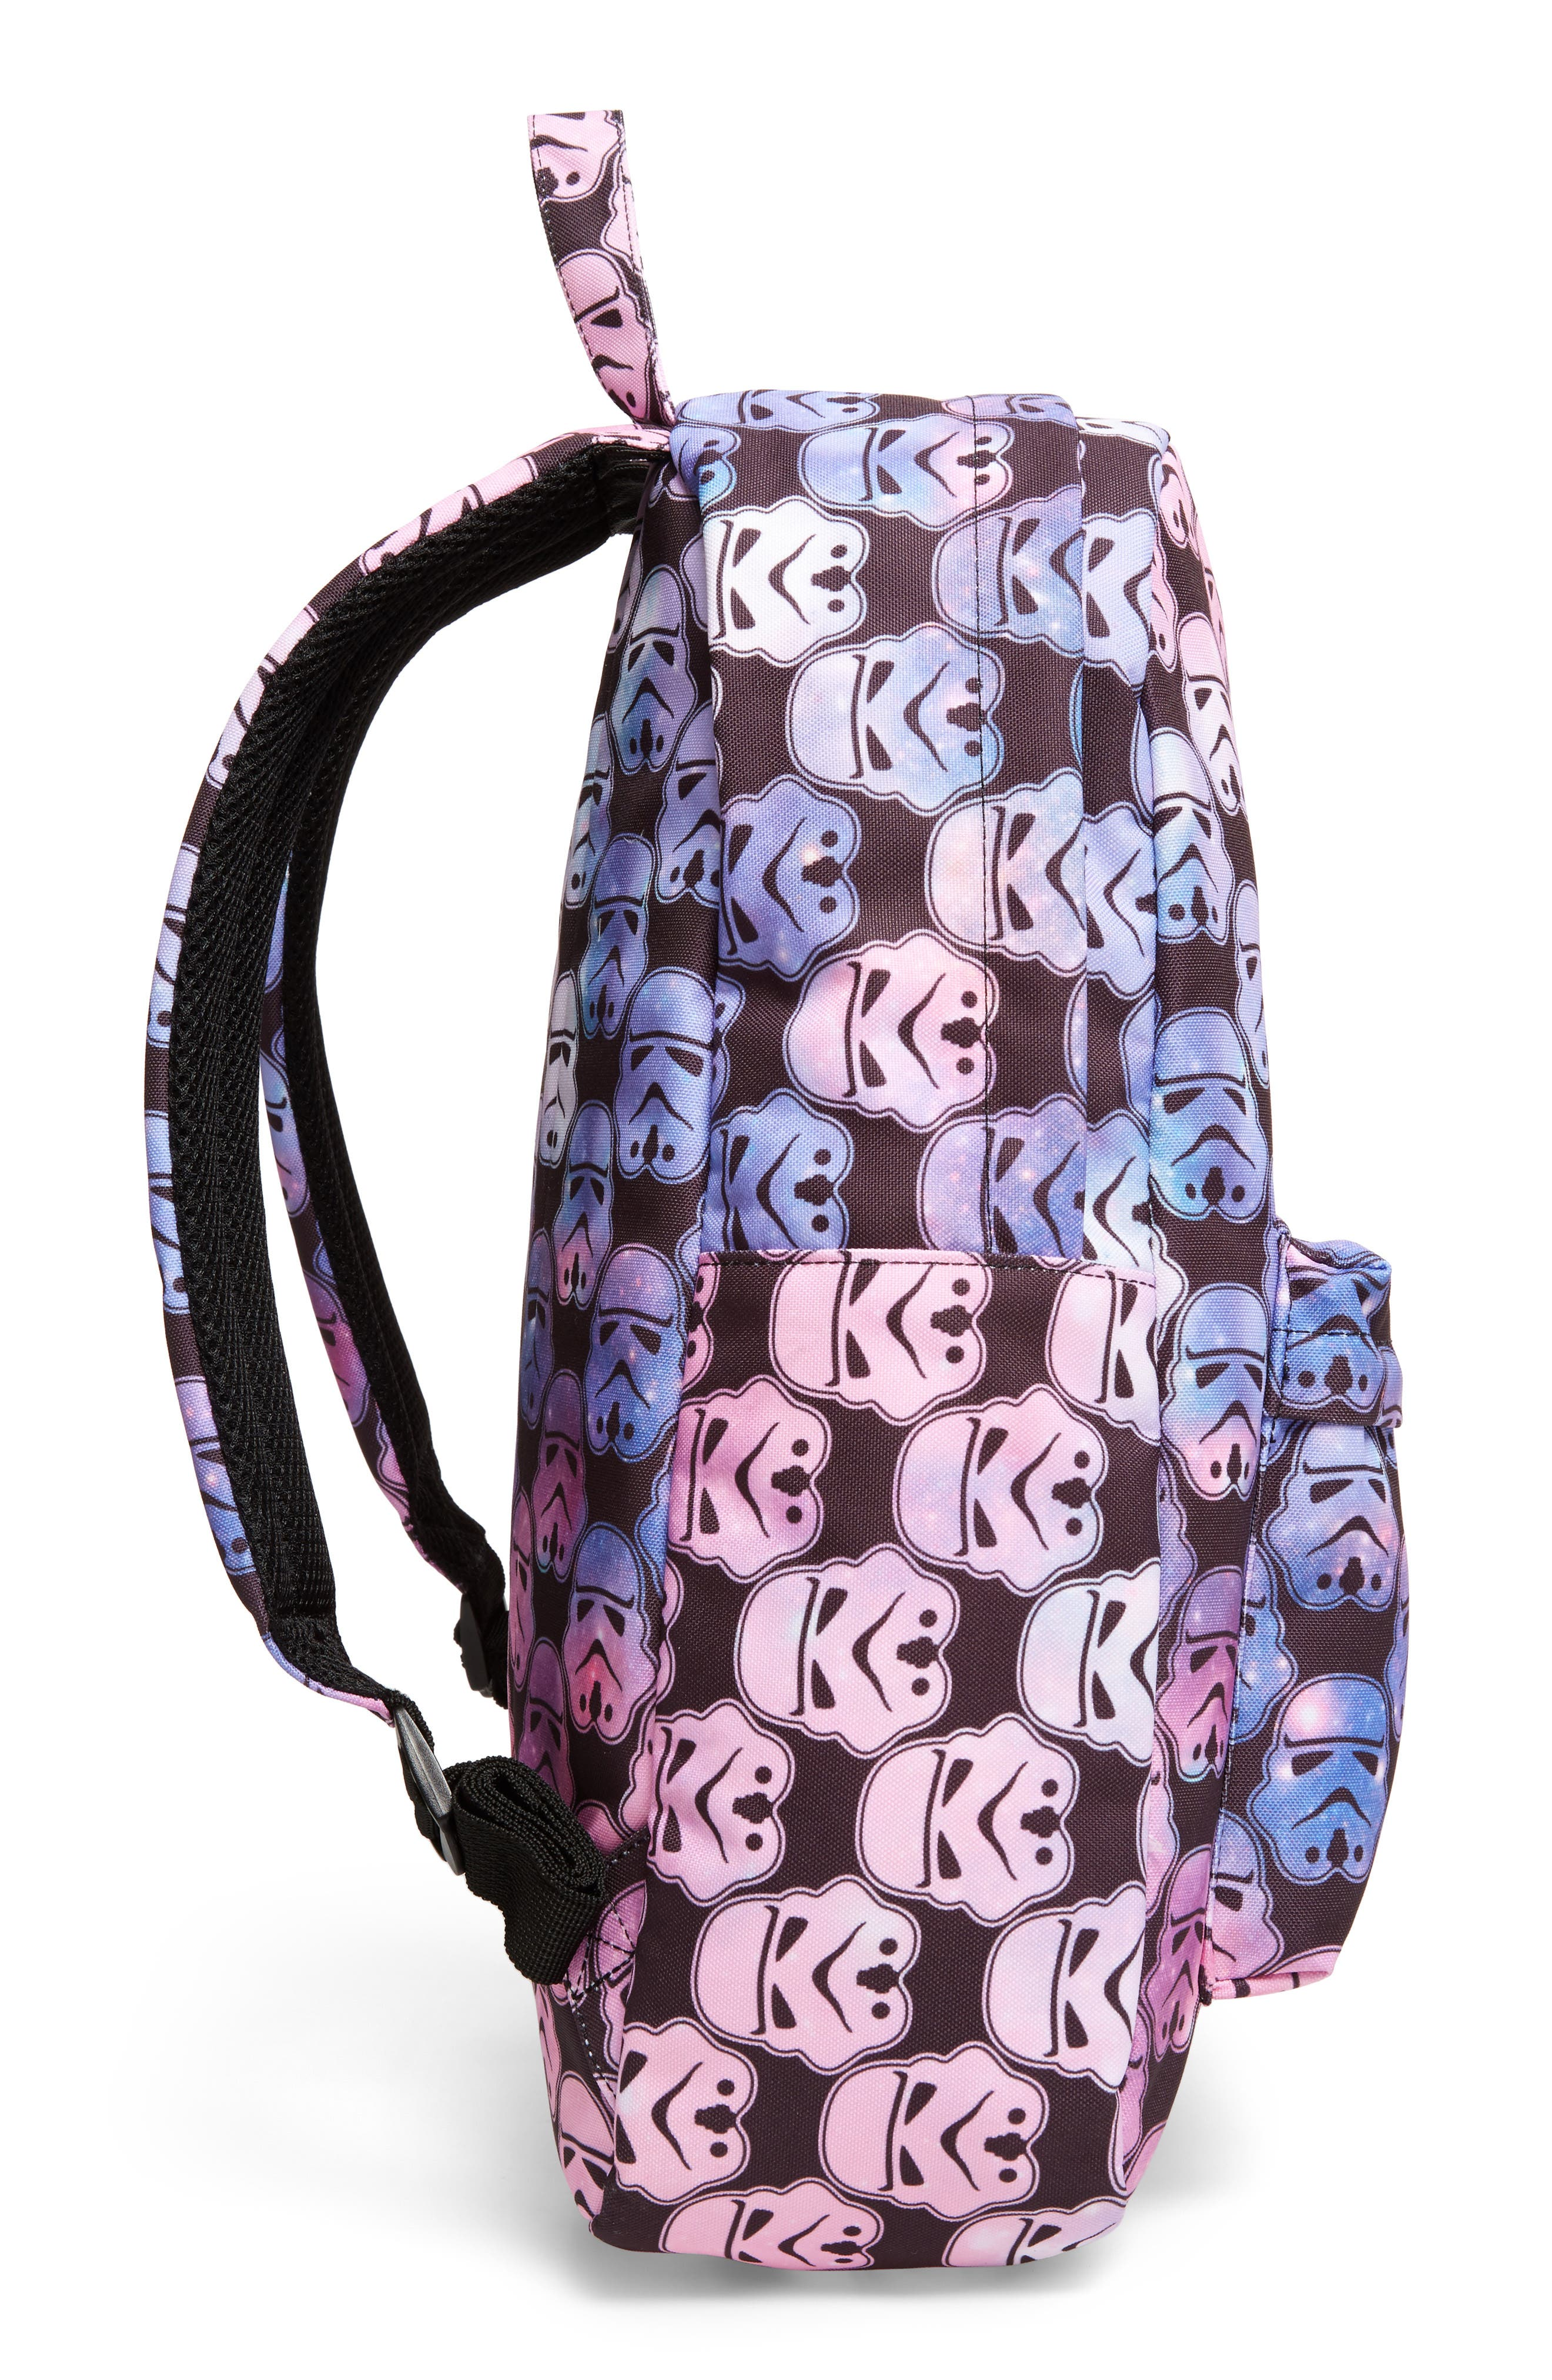 Star Wars<sup>™</sup> Stormtrooper Galaxy Backpack,                             Alternate thumbnail 4, color,                             Multi Black